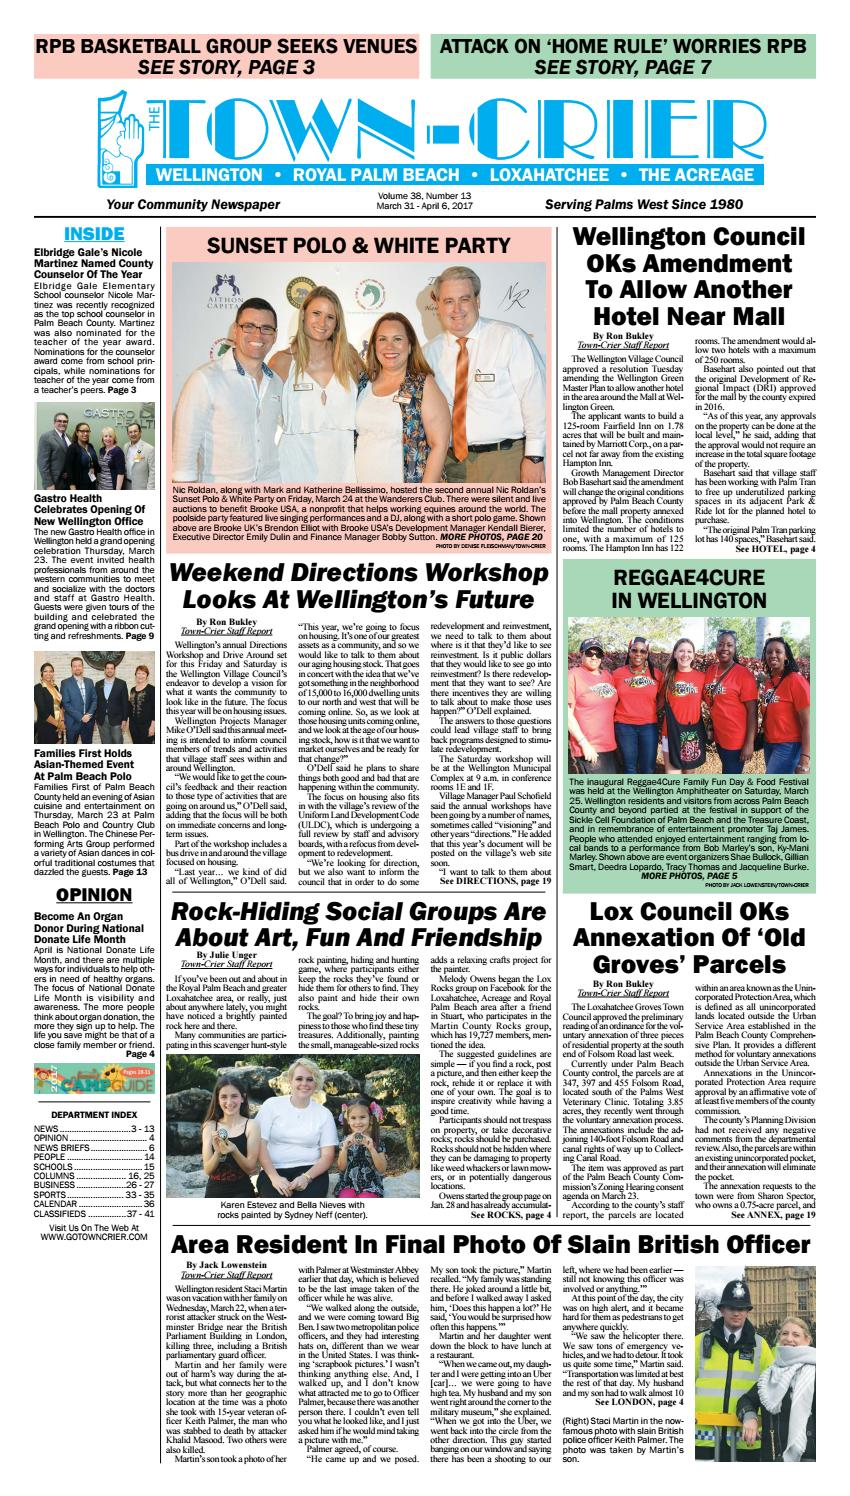 town crier newspaper march 31, 2017 by wellington the magazine llctown crier newspaper march 31, 2017 by wellington the magazine llc issuu